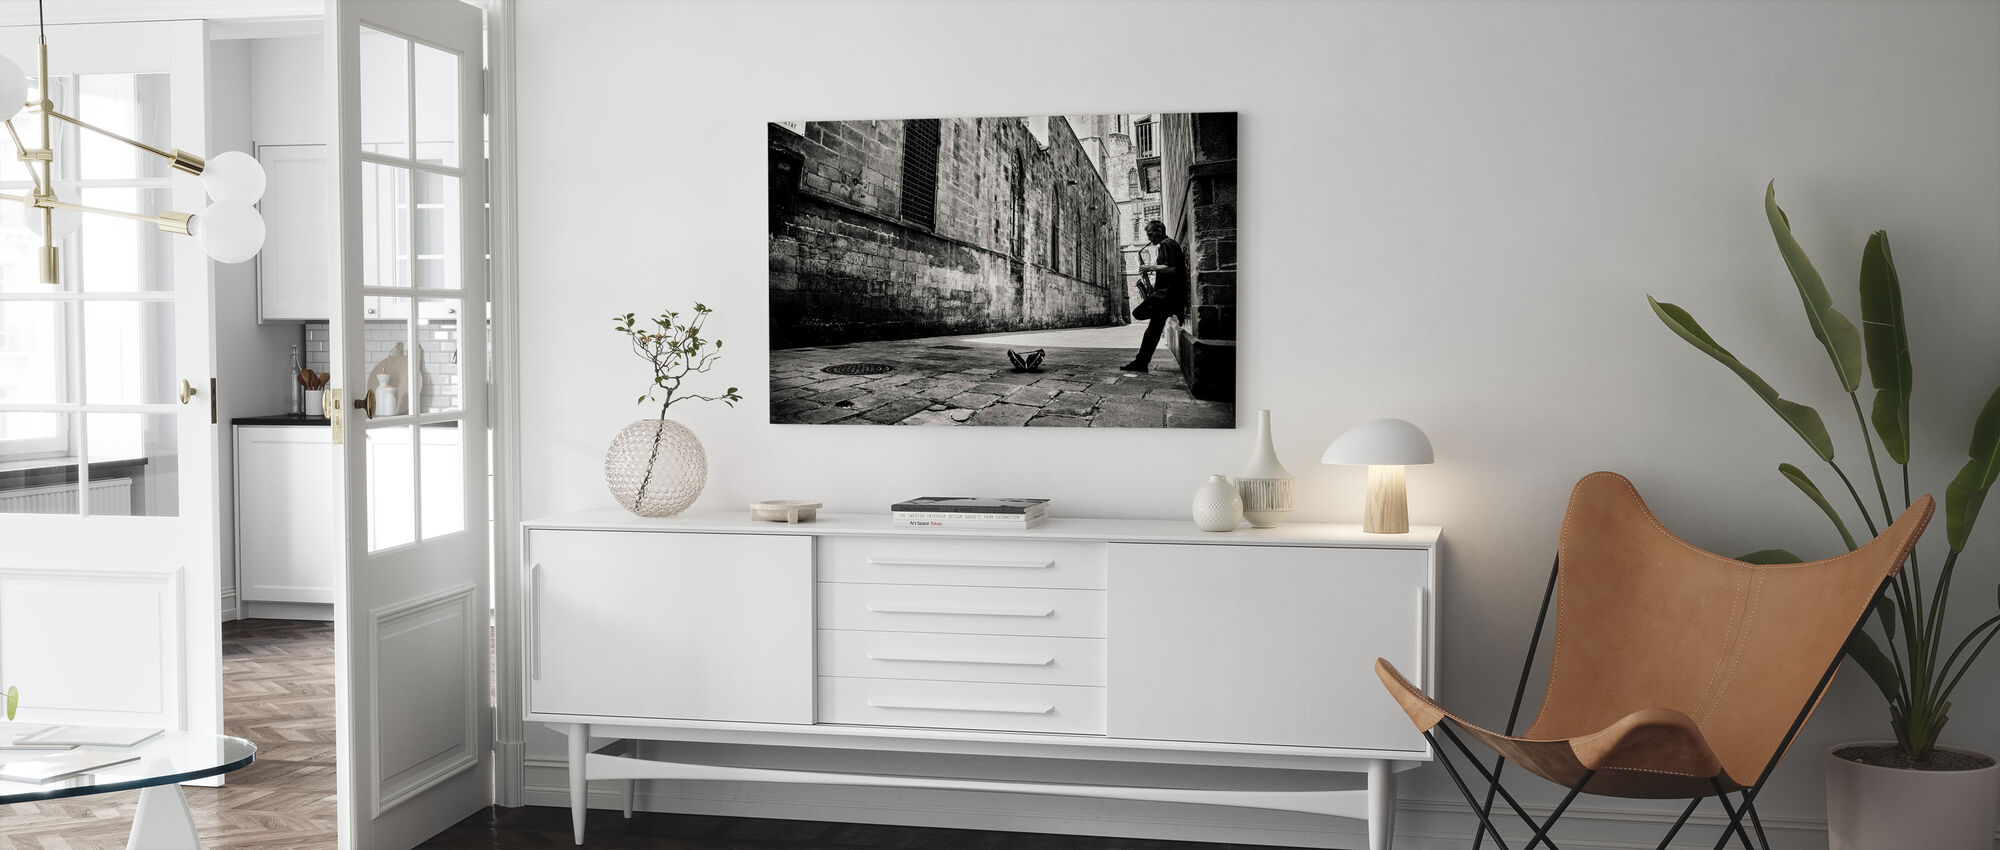 Silent Street, black and white - Canvas print - Living Room